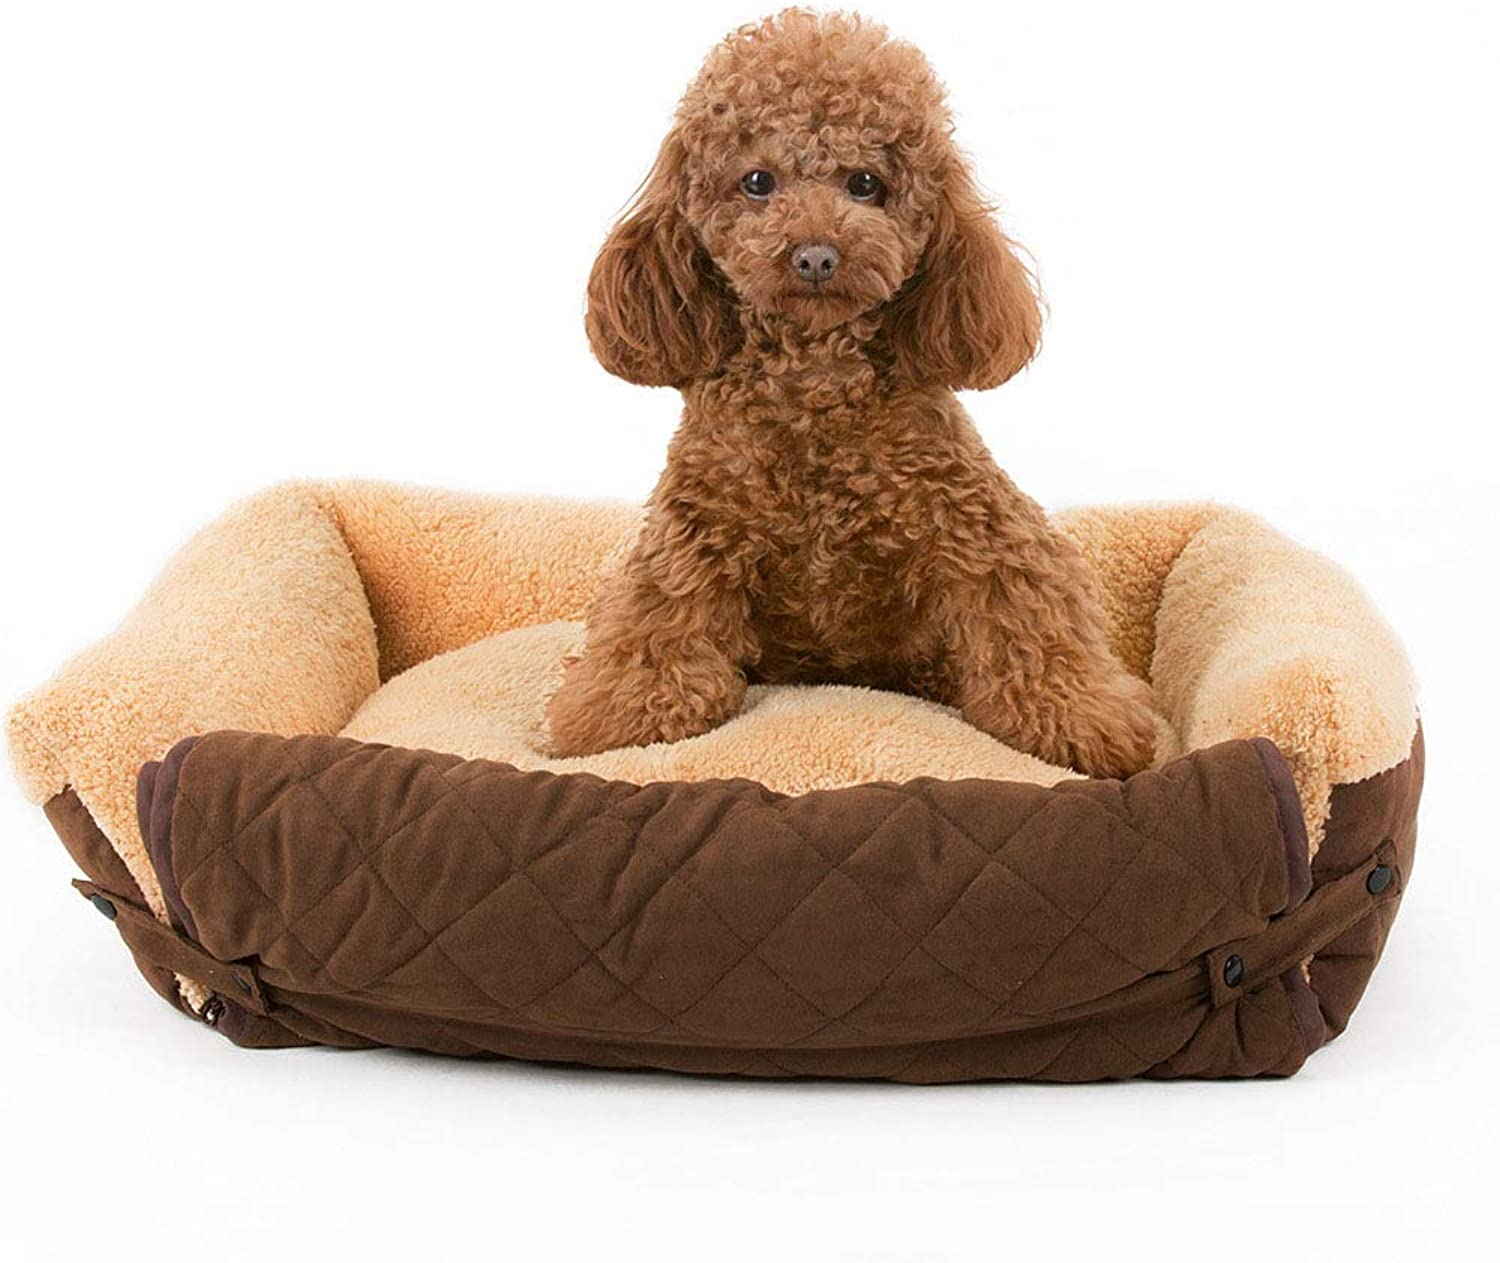 MiaoMiao Luxury HighEnd Pet Dog Cat House Bed Removable And Washable Kennel golden Retriever Large Dog Pet Sofa Nest,Browns